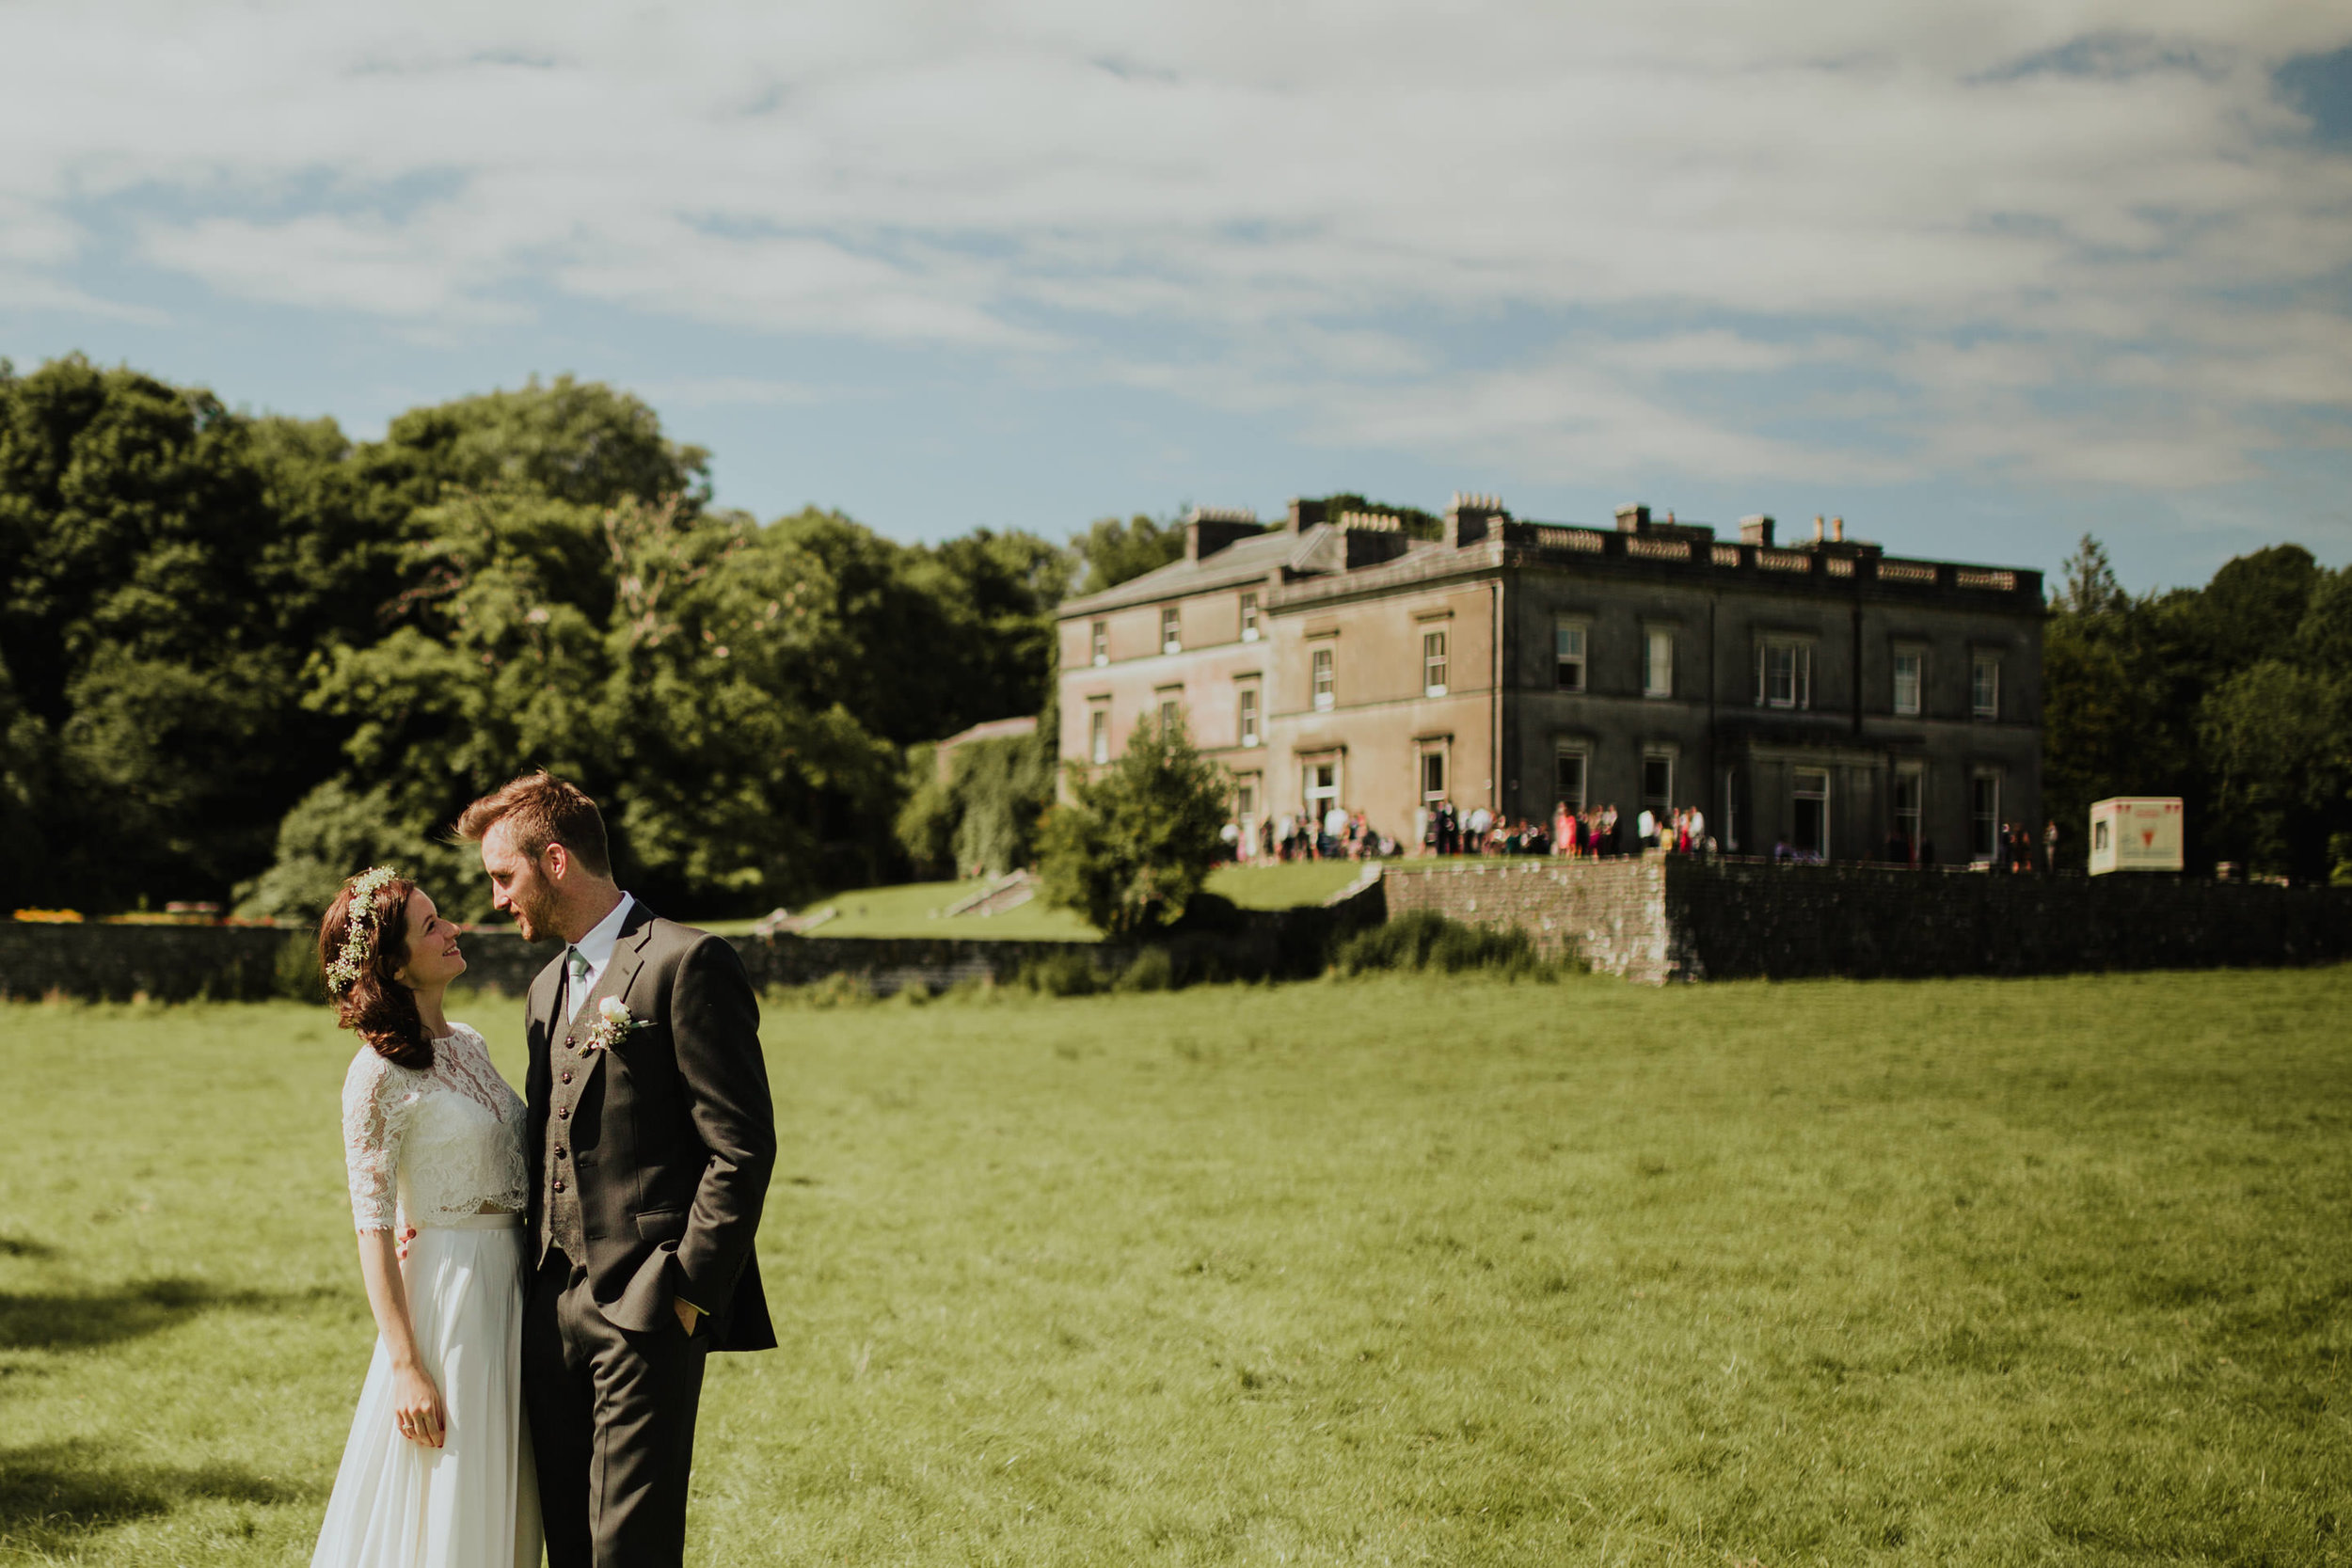 a+s_temple_house_sligo_wedding_livia_figueiredo_836.jpg